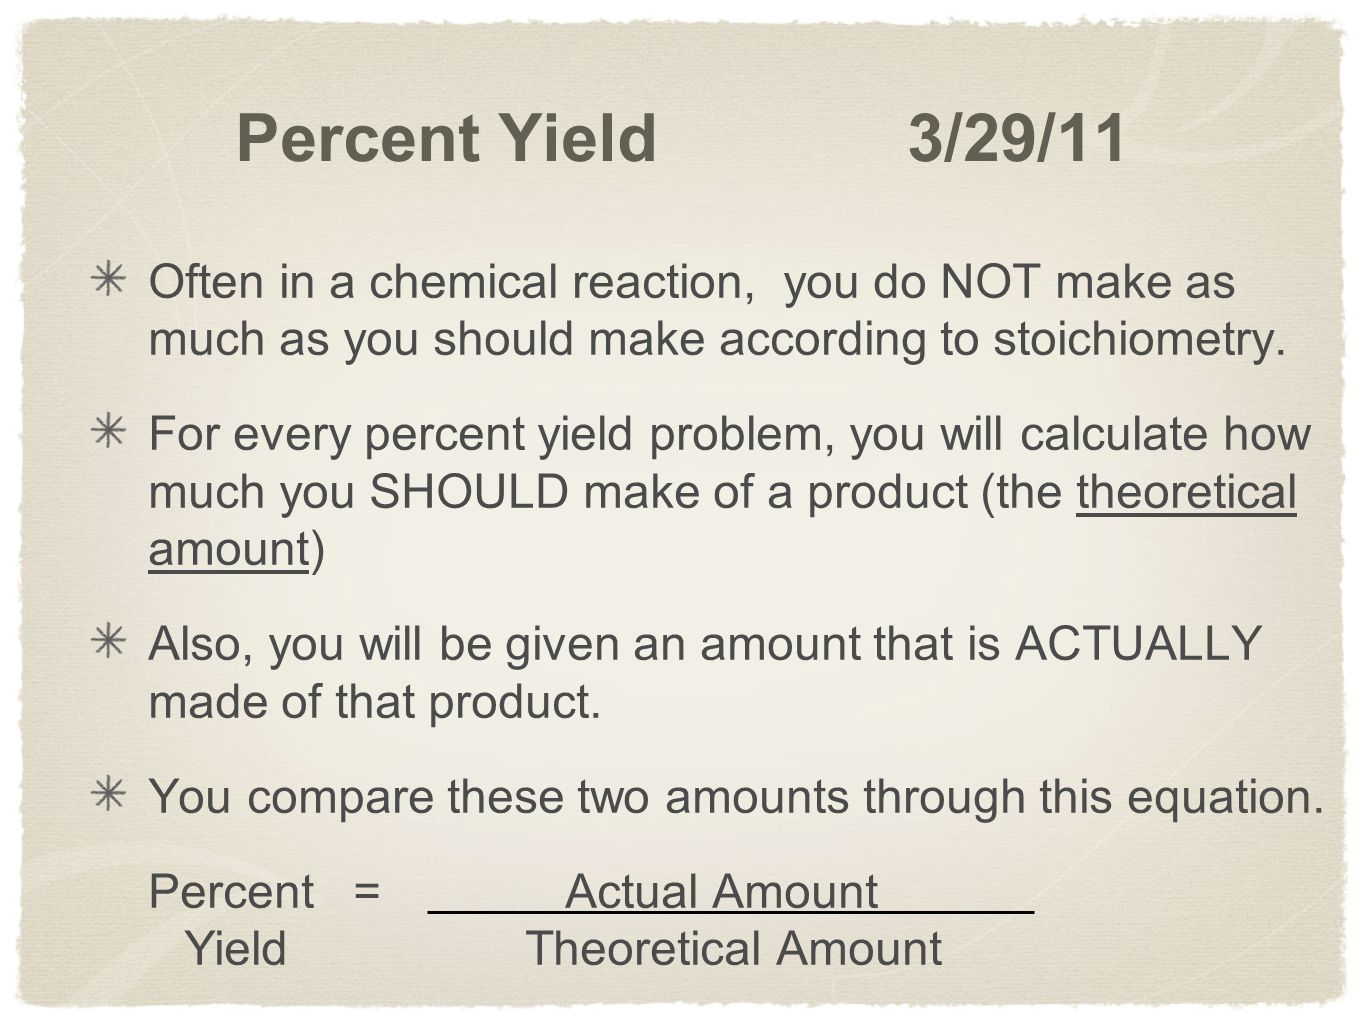 Percent Yield 3/29/11 Often in a chemical reaction, you do NOT make as much as you should make according to stoichiometry.